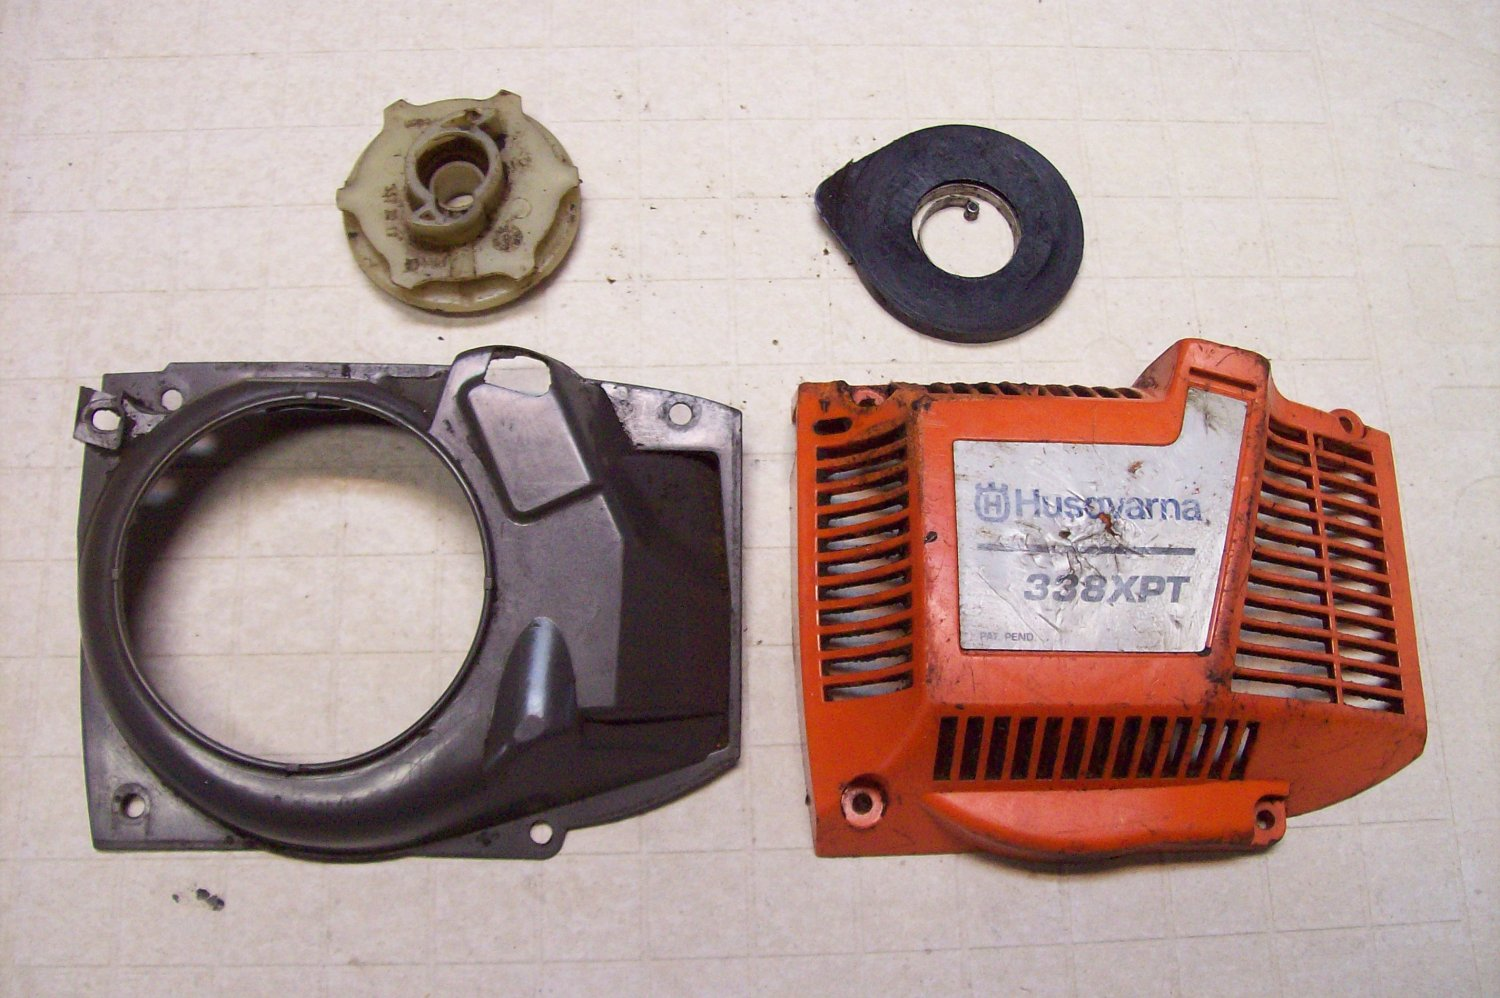 Husqvarna 338XPT ChainSaw 338 XPT Chain Saw Recoil Starter Parts Husky